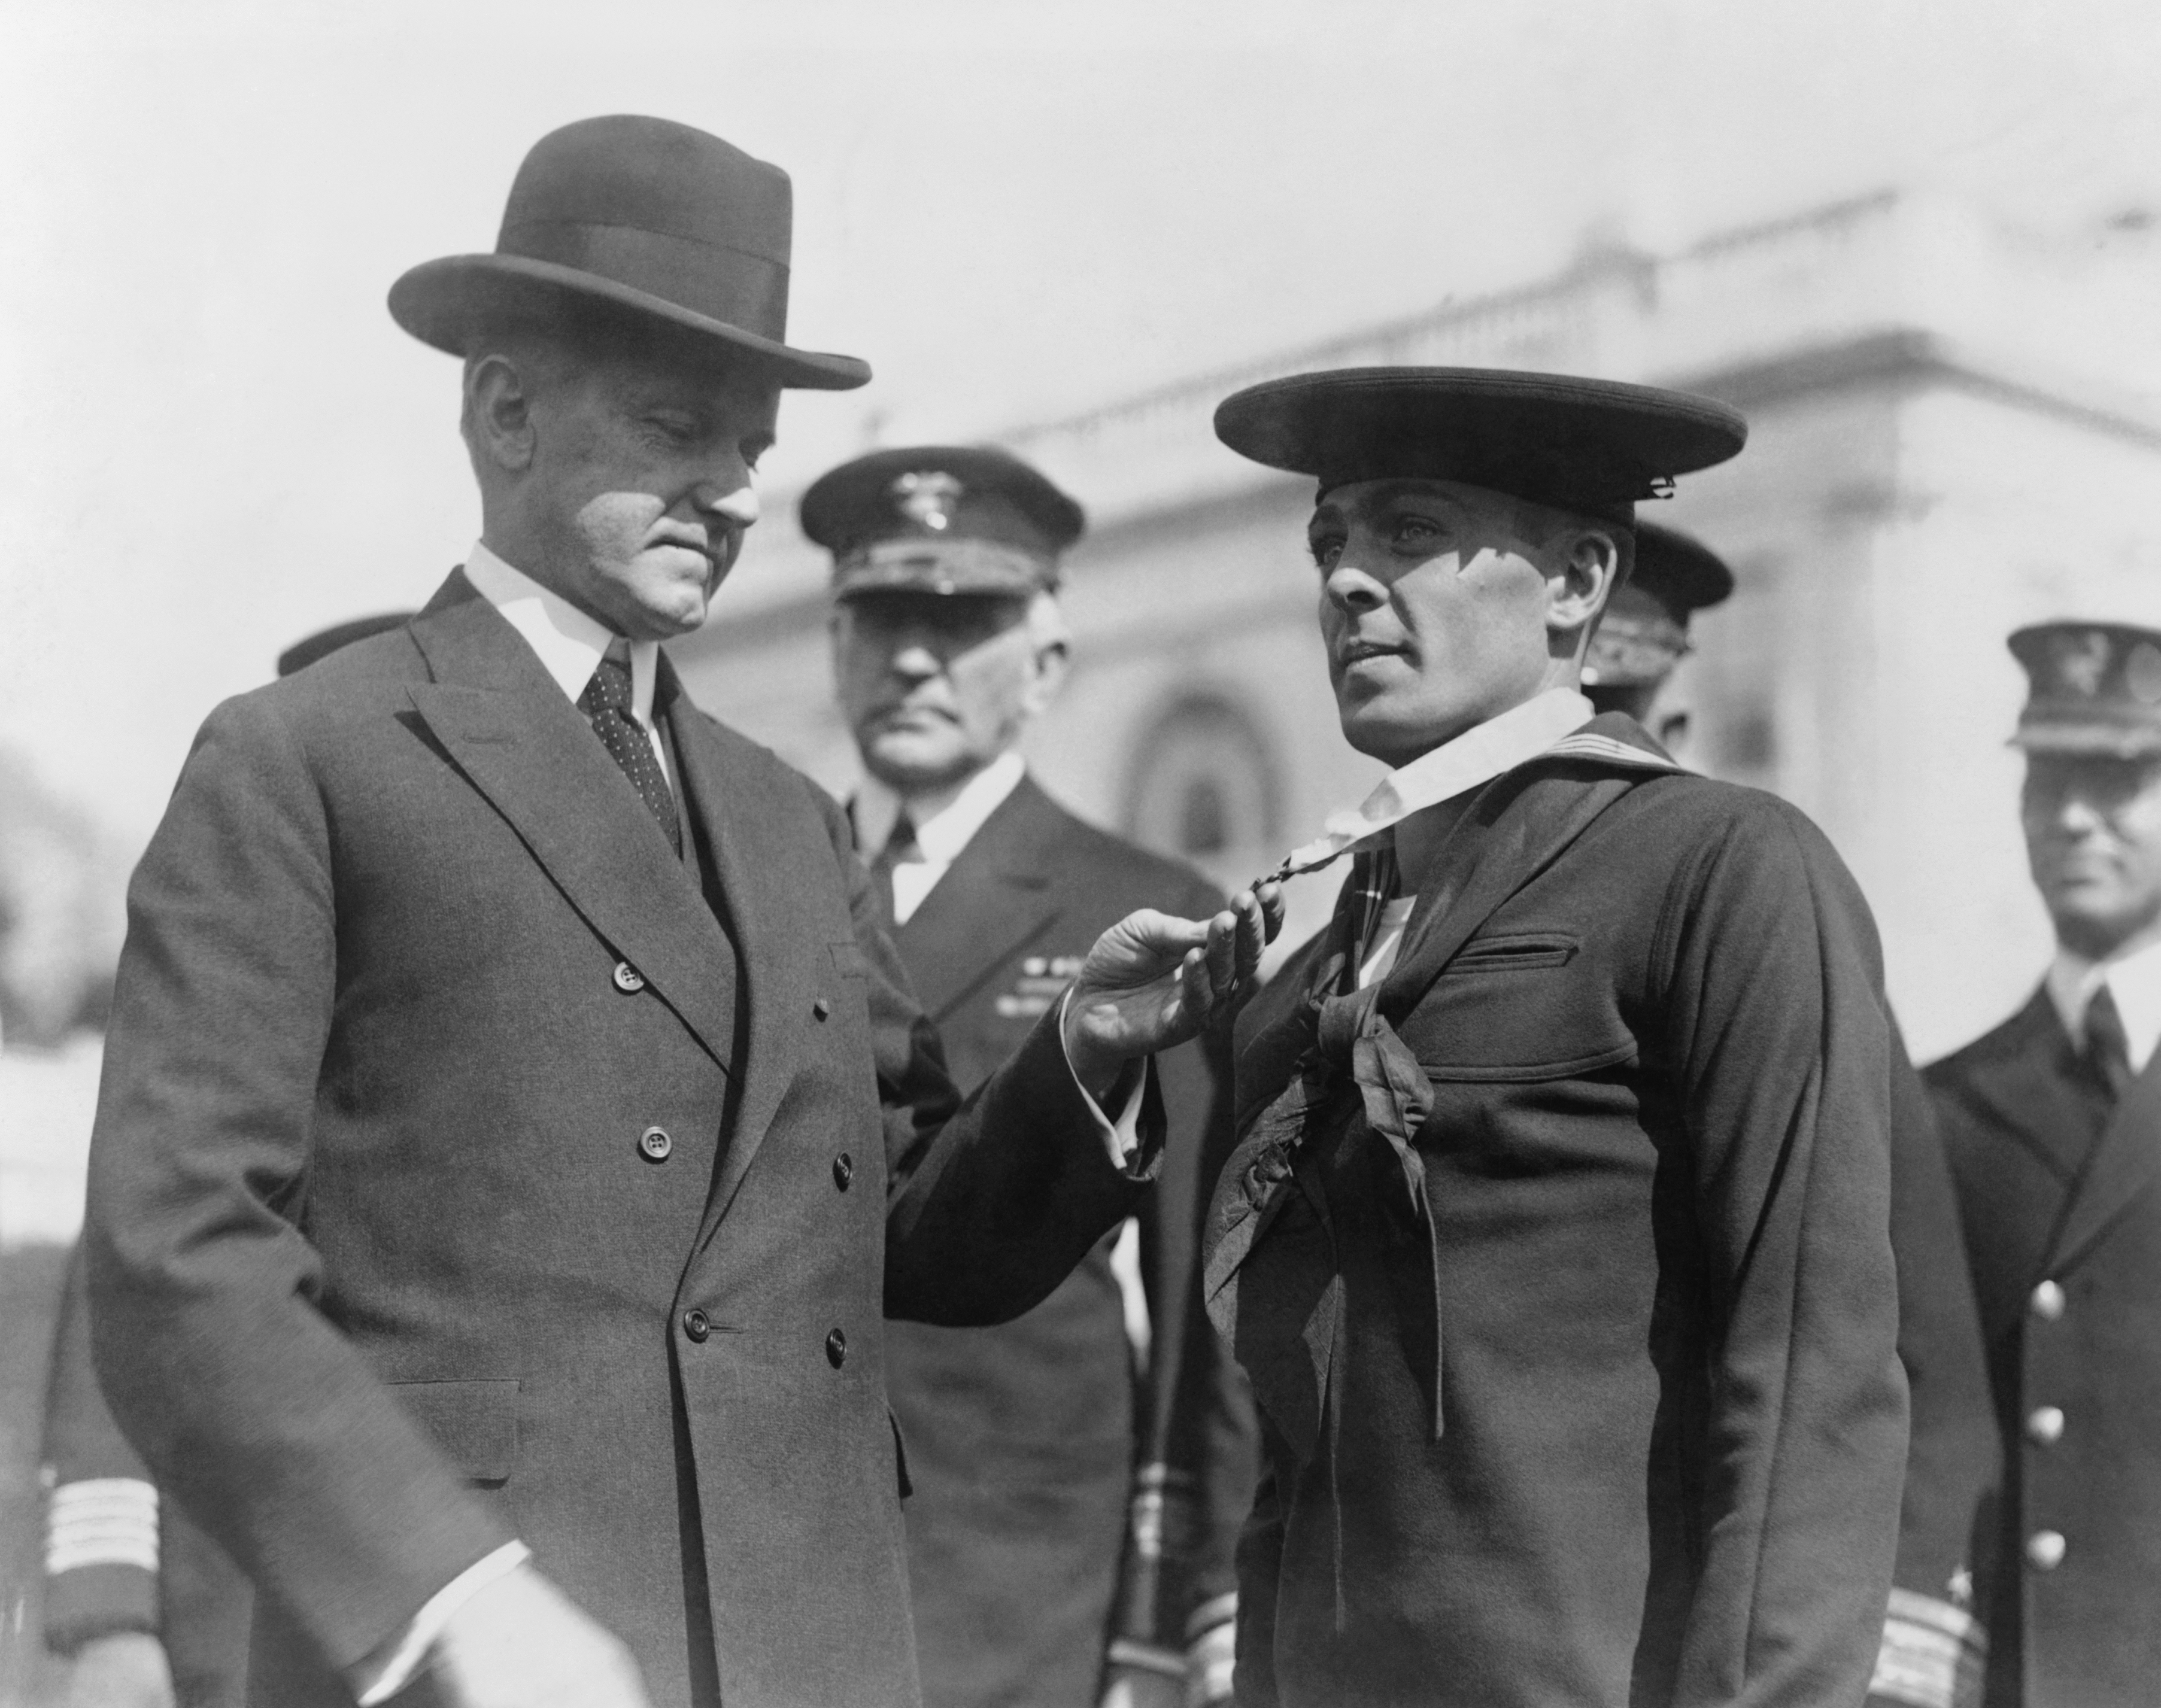 President Calvin Coolidge bestowing the Medal of Honor upon Henry Breault, March 8, 1924